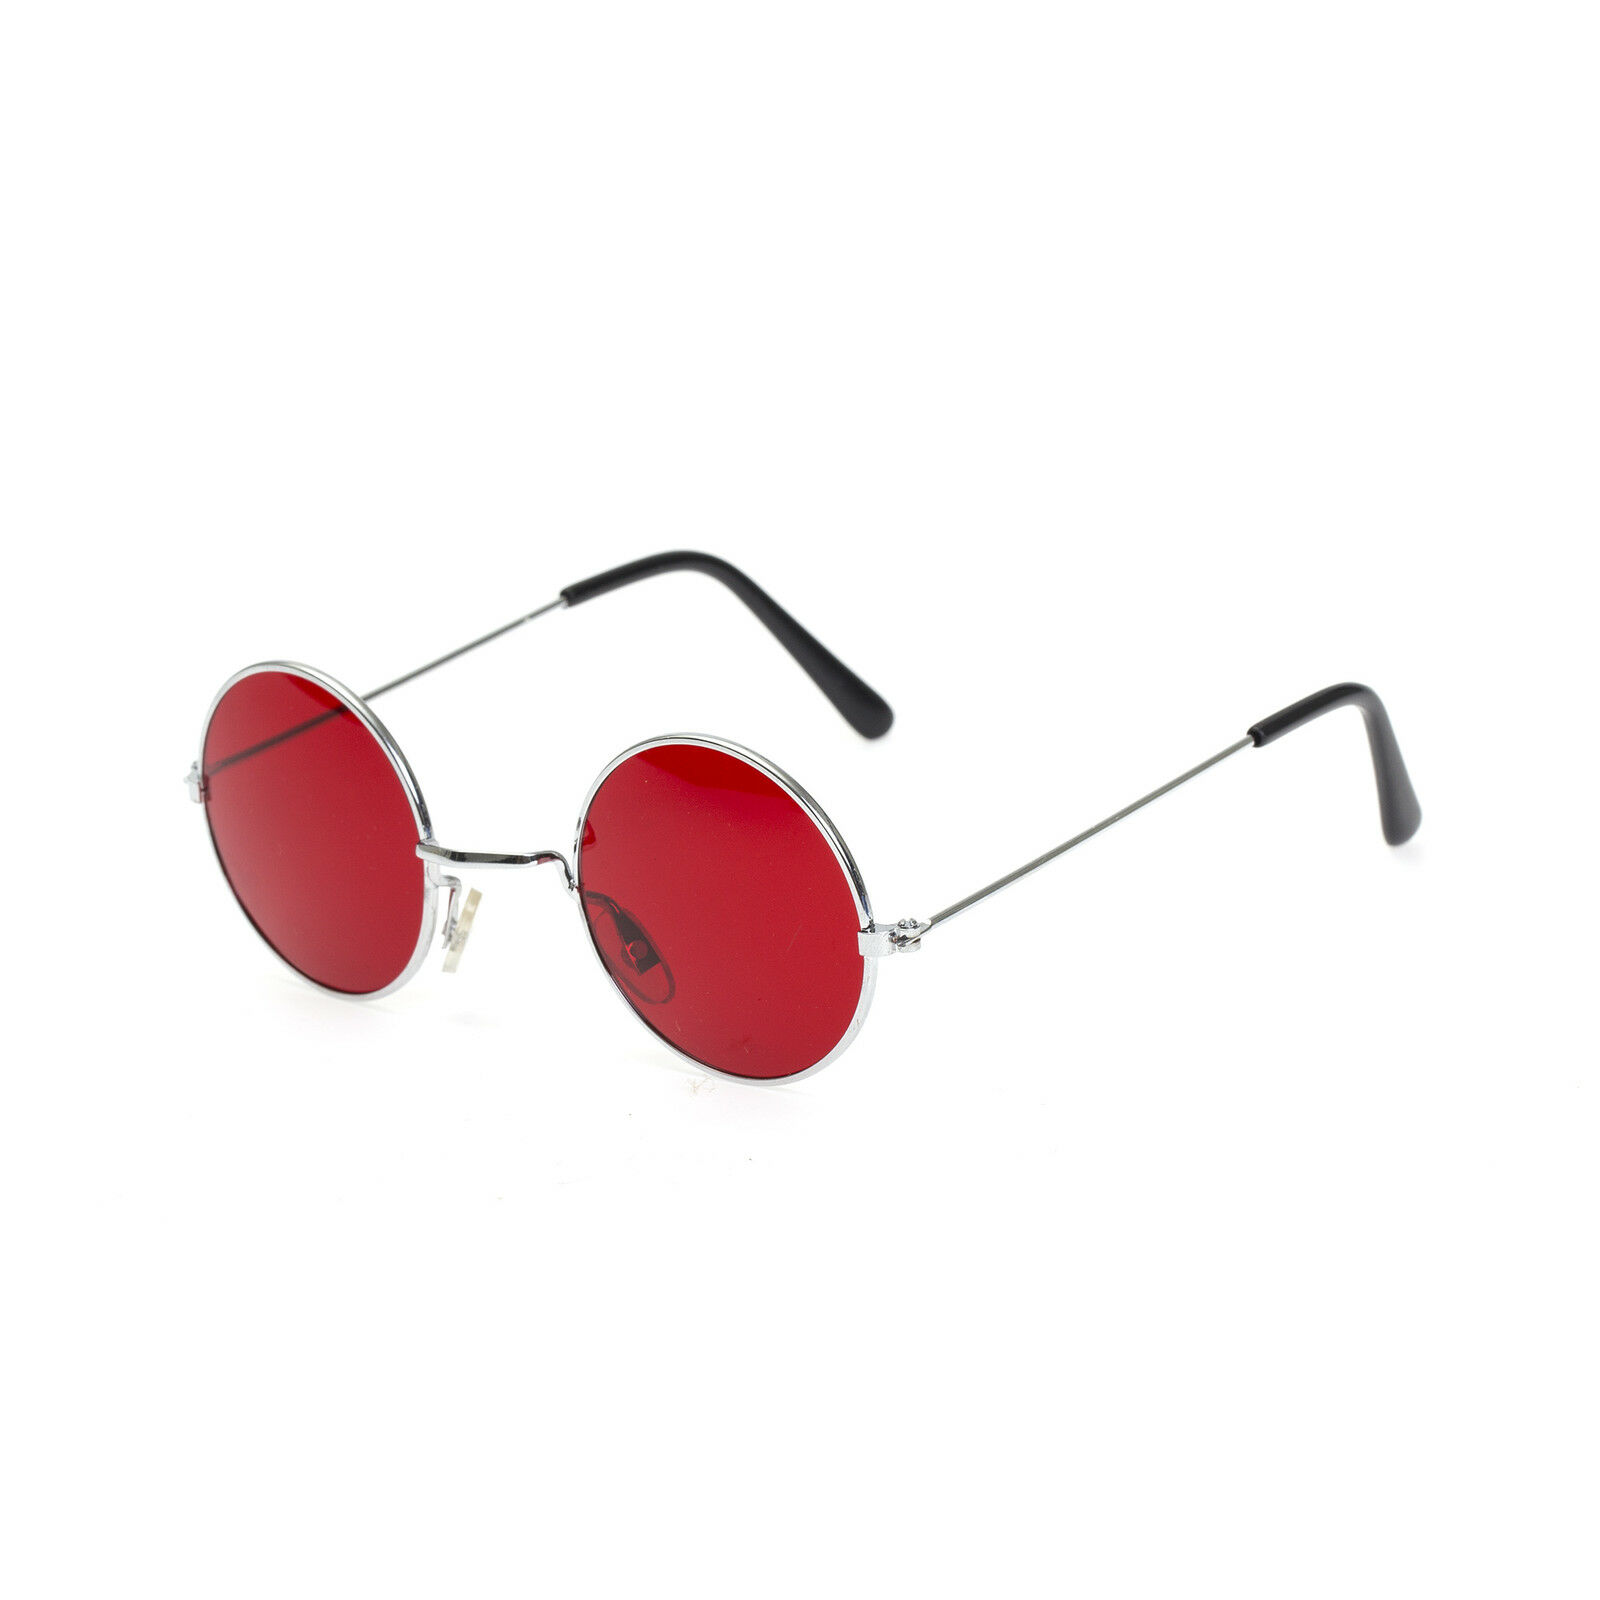 Red Lens Round Metal Frame John Lennon Glasses | eBay